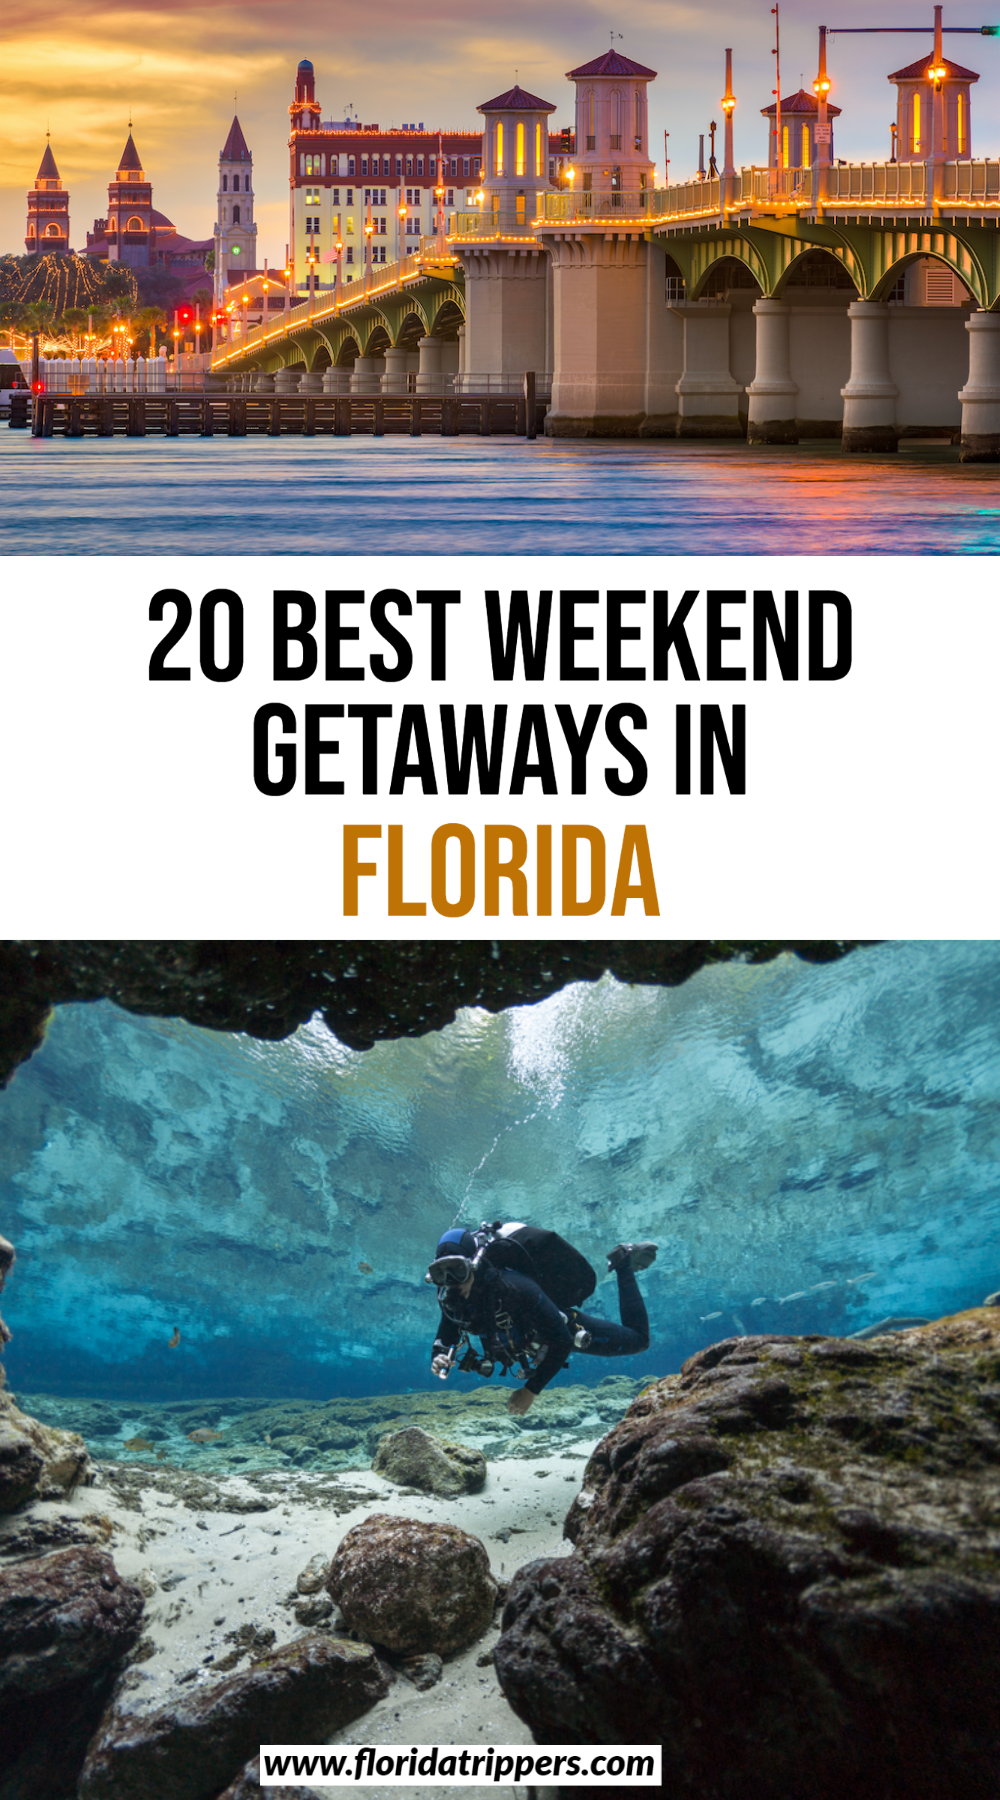 The Ultimate Places To Eat And Drink During A Trip Miami Miami Vacation Weekend In Miami Miami Restaurants South Beach